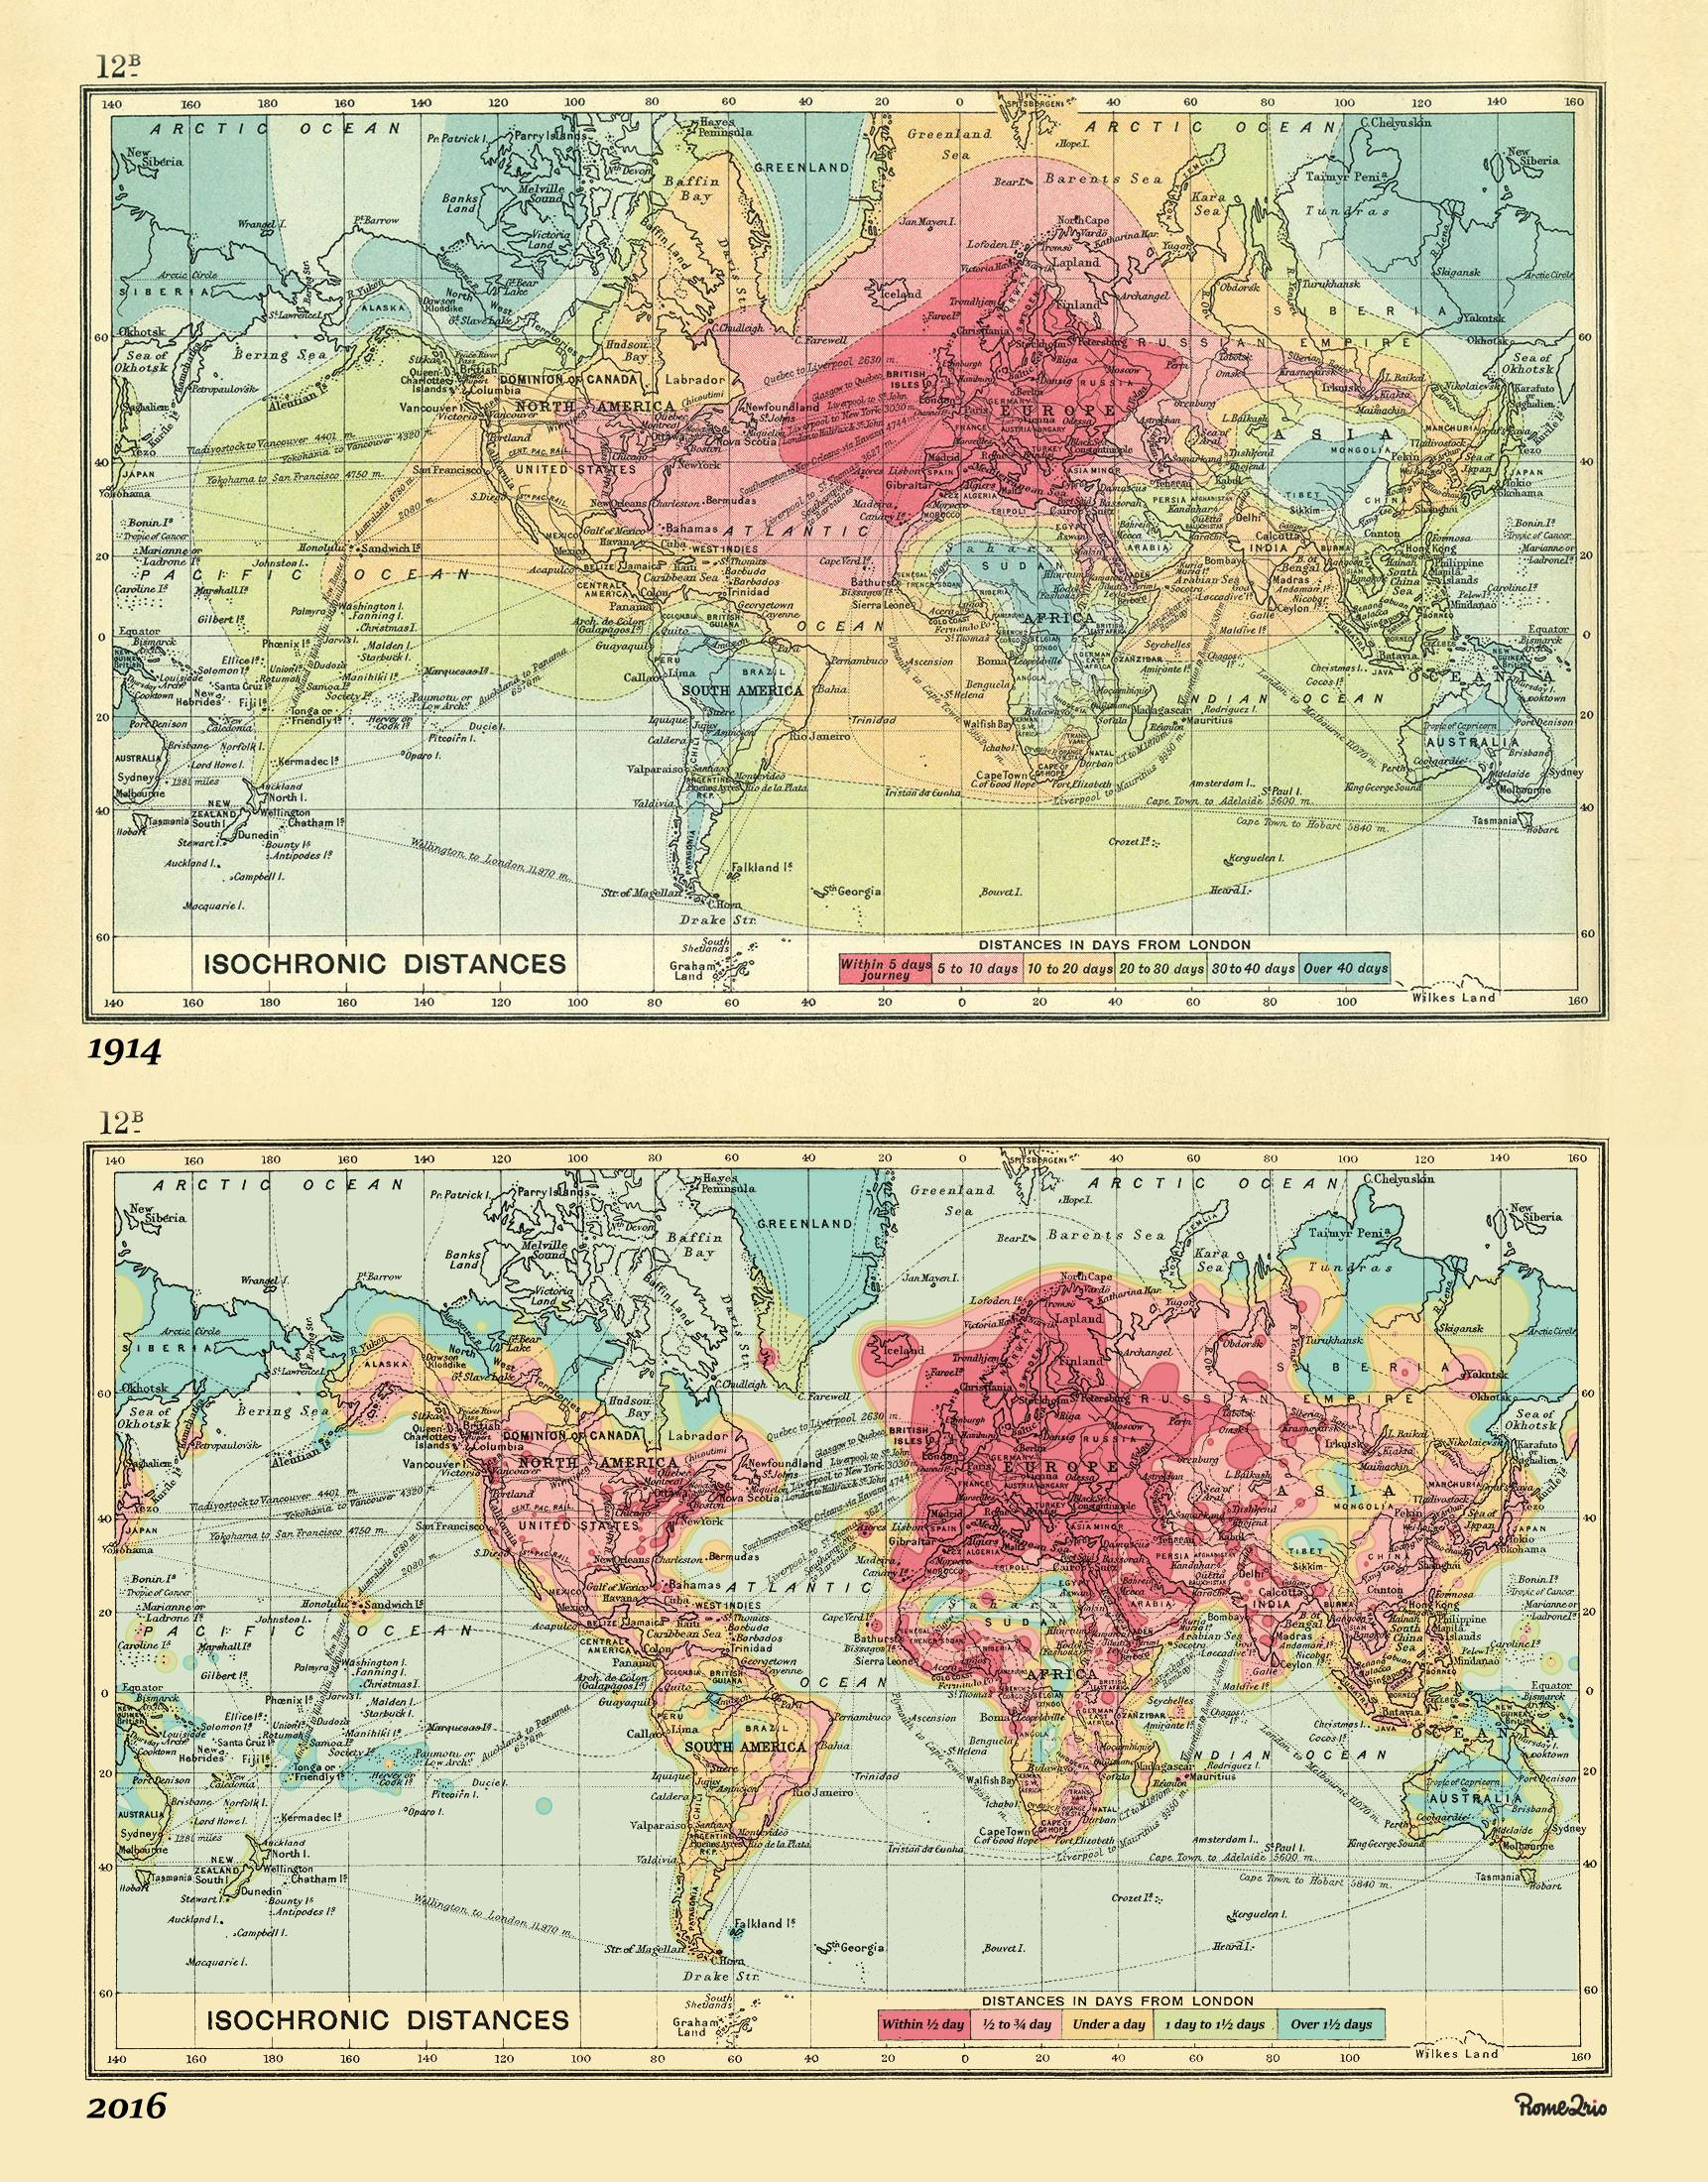 London Isochronic Travel Times 1914 and 2016